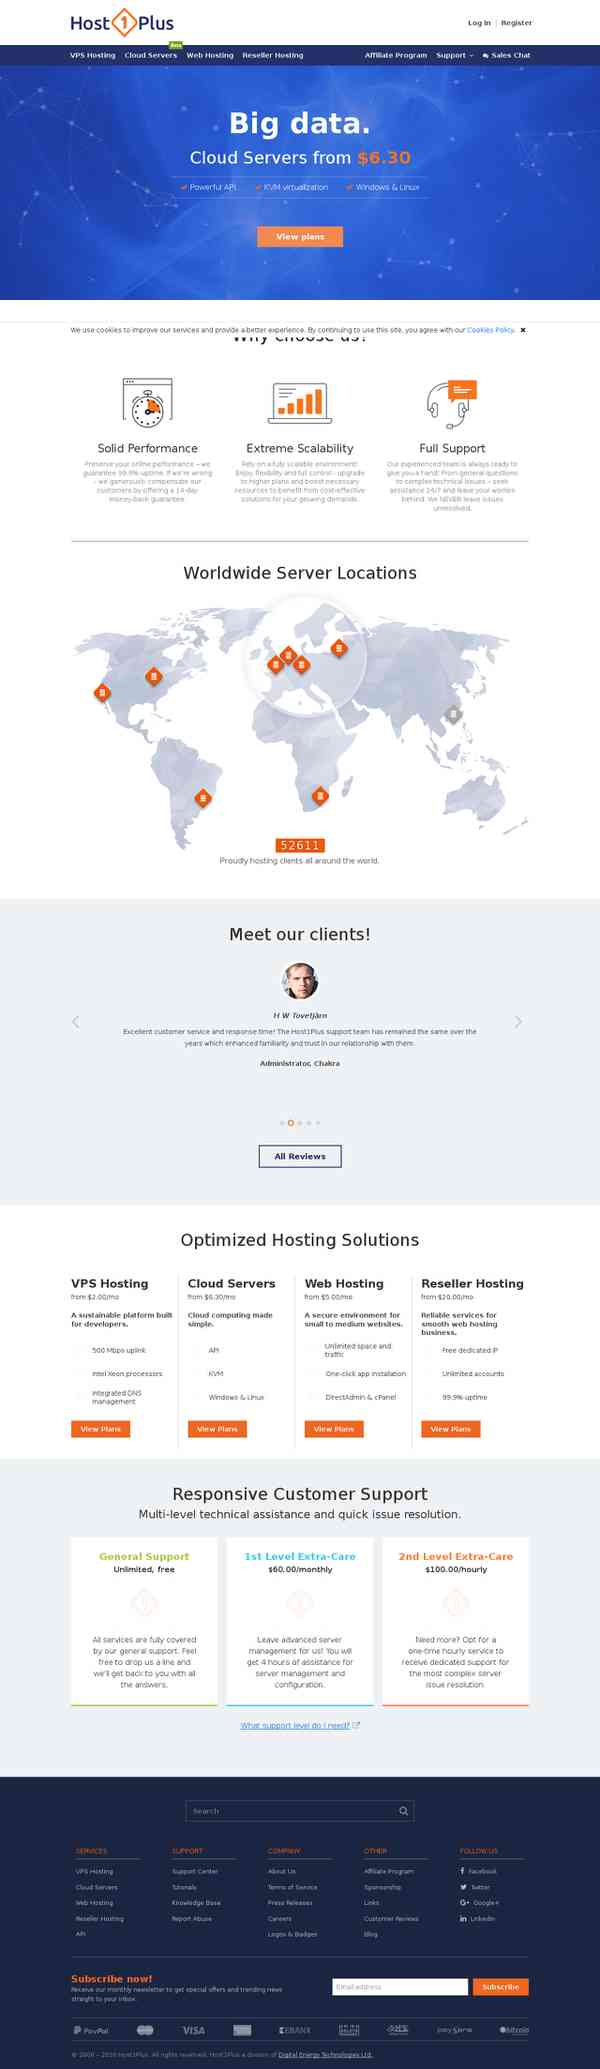 Host1Plus: High Quality Hosting Services